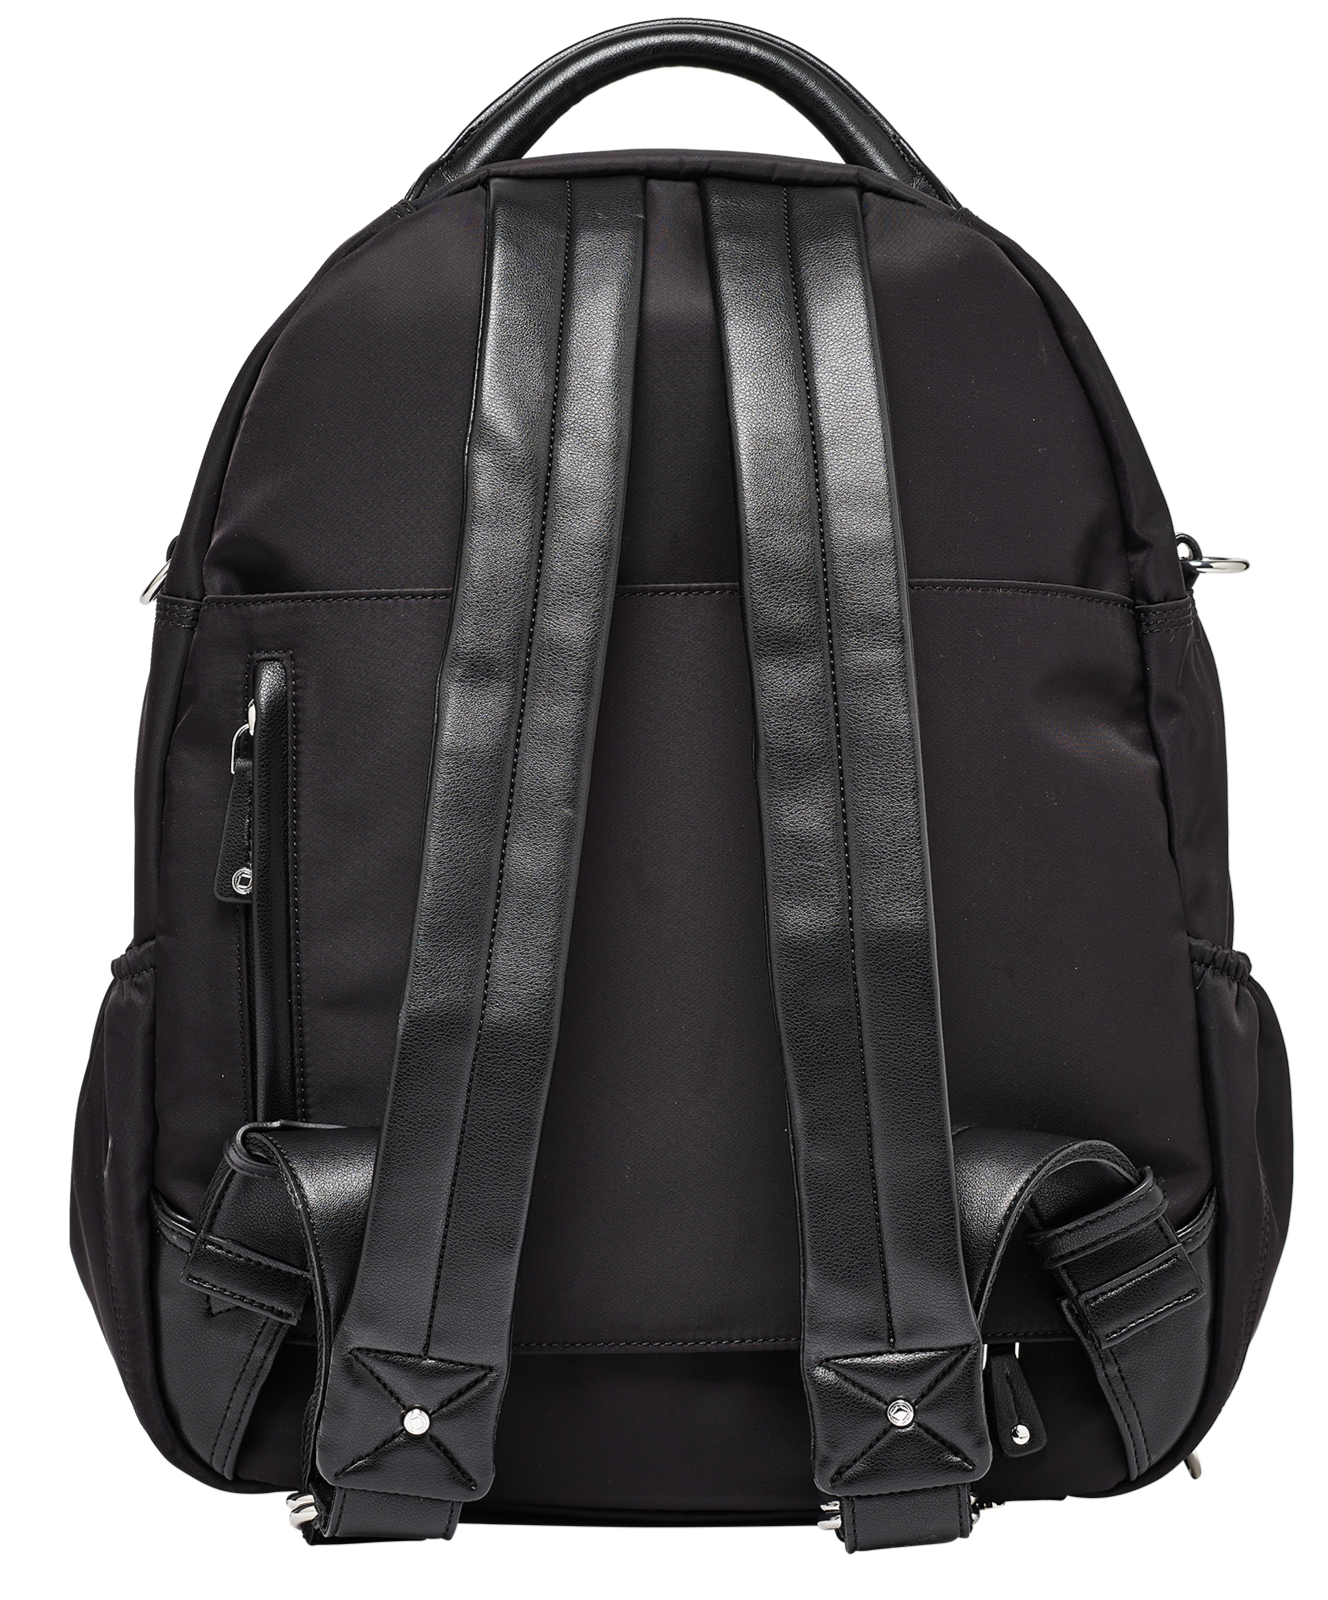 Our designer nylon backpack is ideal for women wanting to travel light without missing out on a breathtakingly beautiful design and functional features.